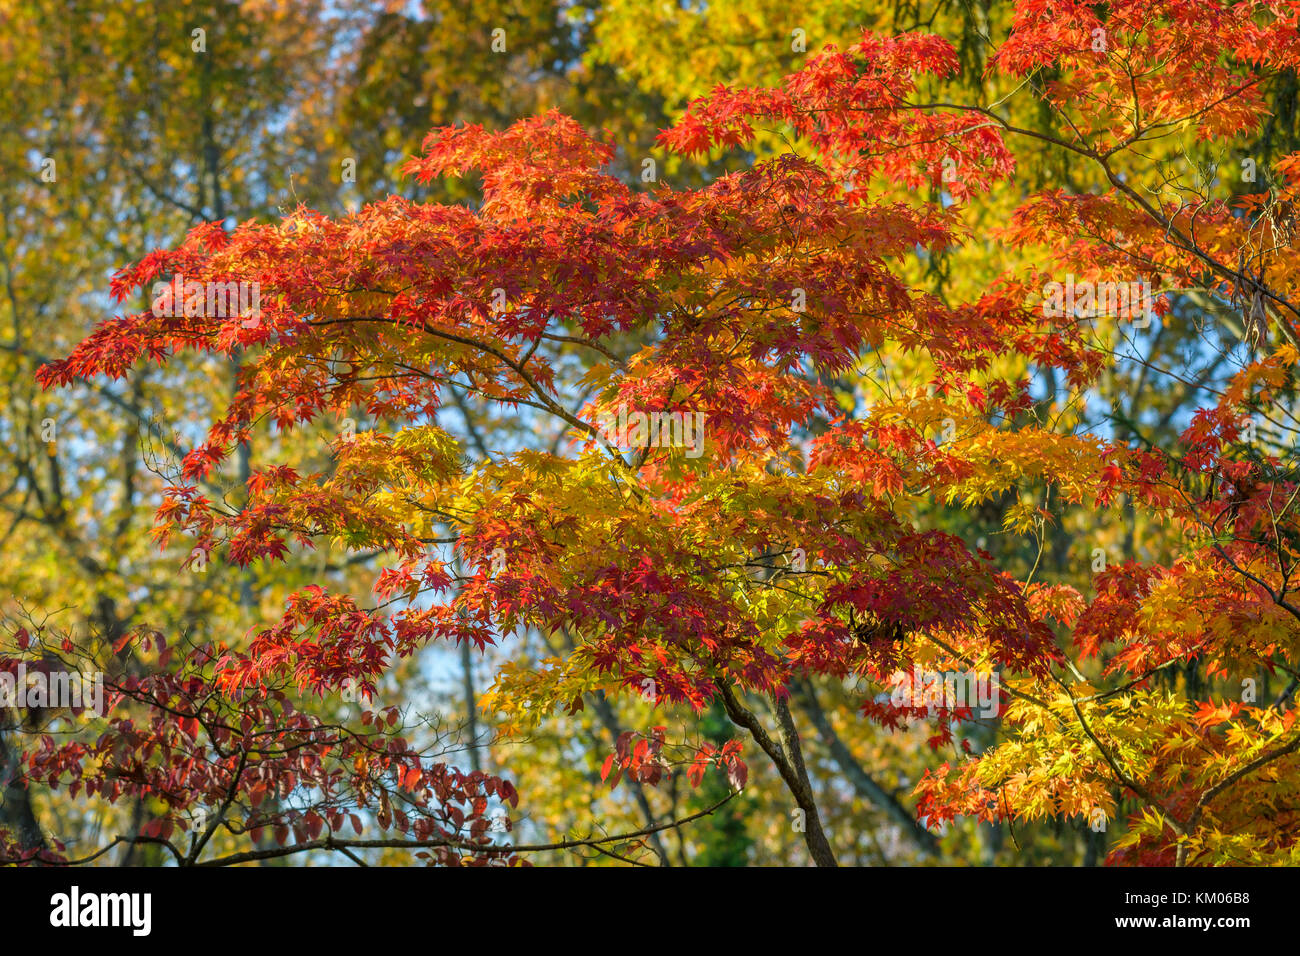 Maple leaves changing color durring the autumn season. - Stock Image